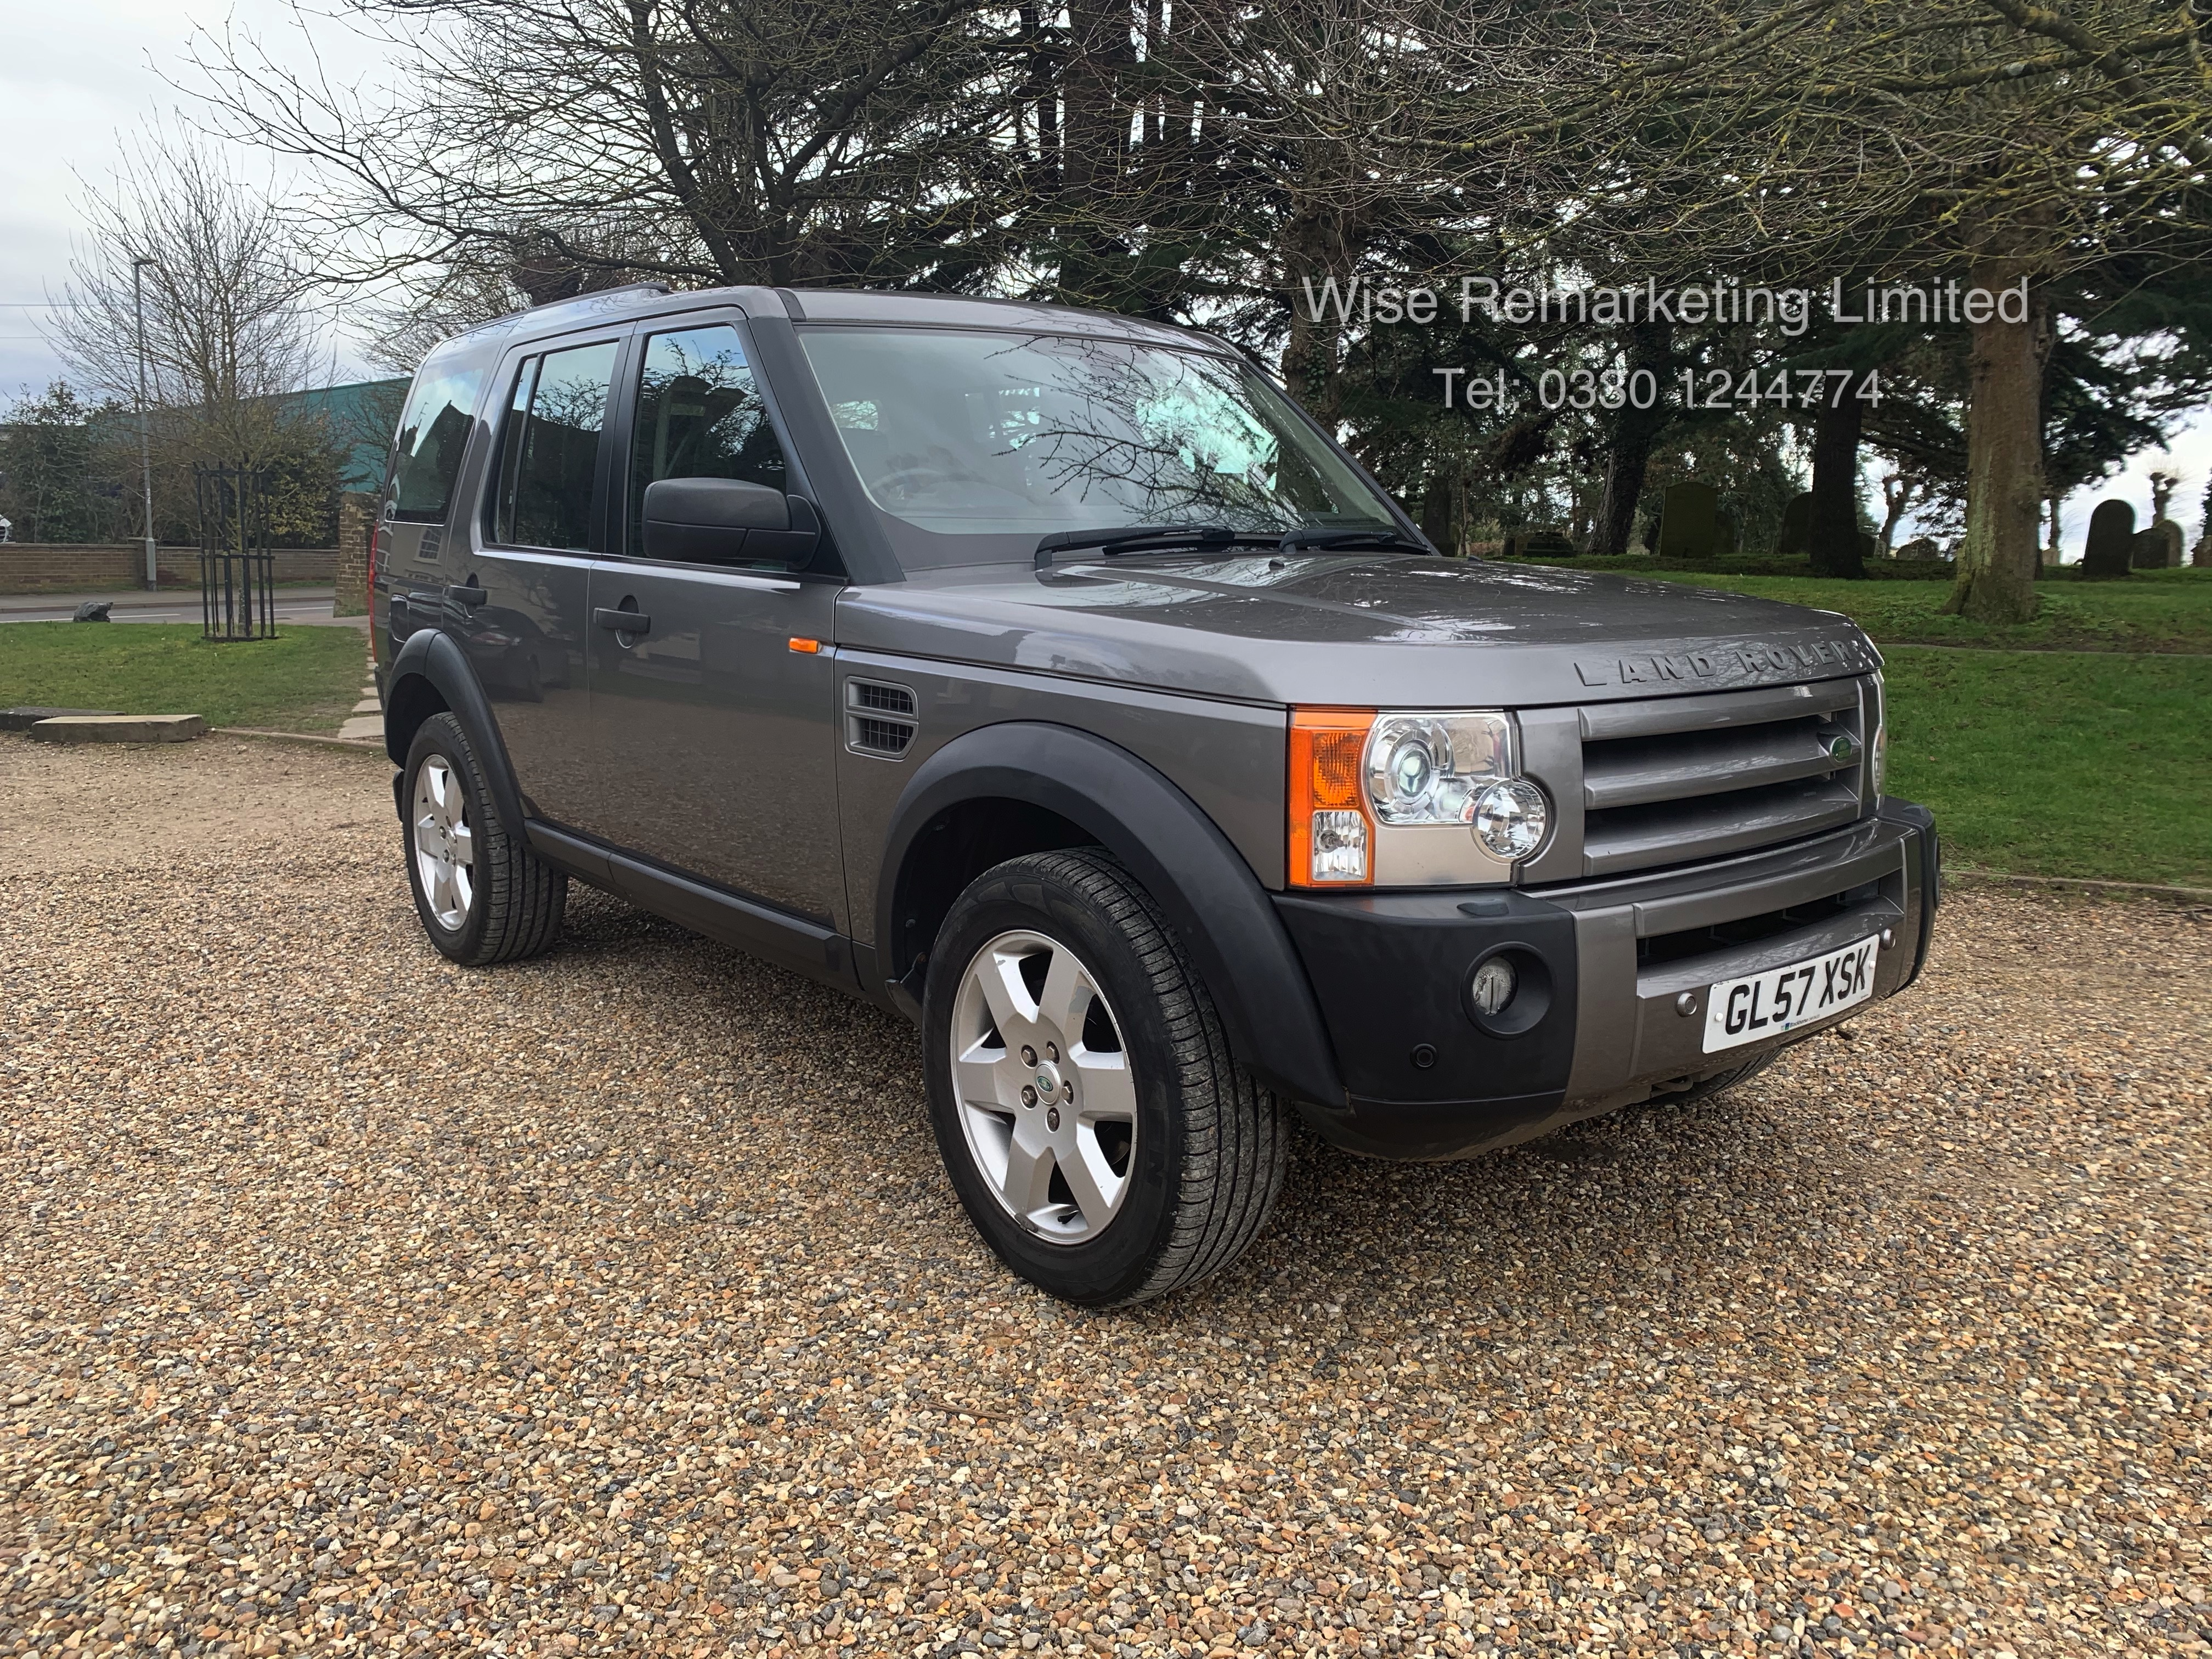 Land Rover Discovery 2.7 TDV6 HSE - Automatic - 2008 Reg - Full Leather - 7 Seater - Sat Nav - - Image 2 of 31